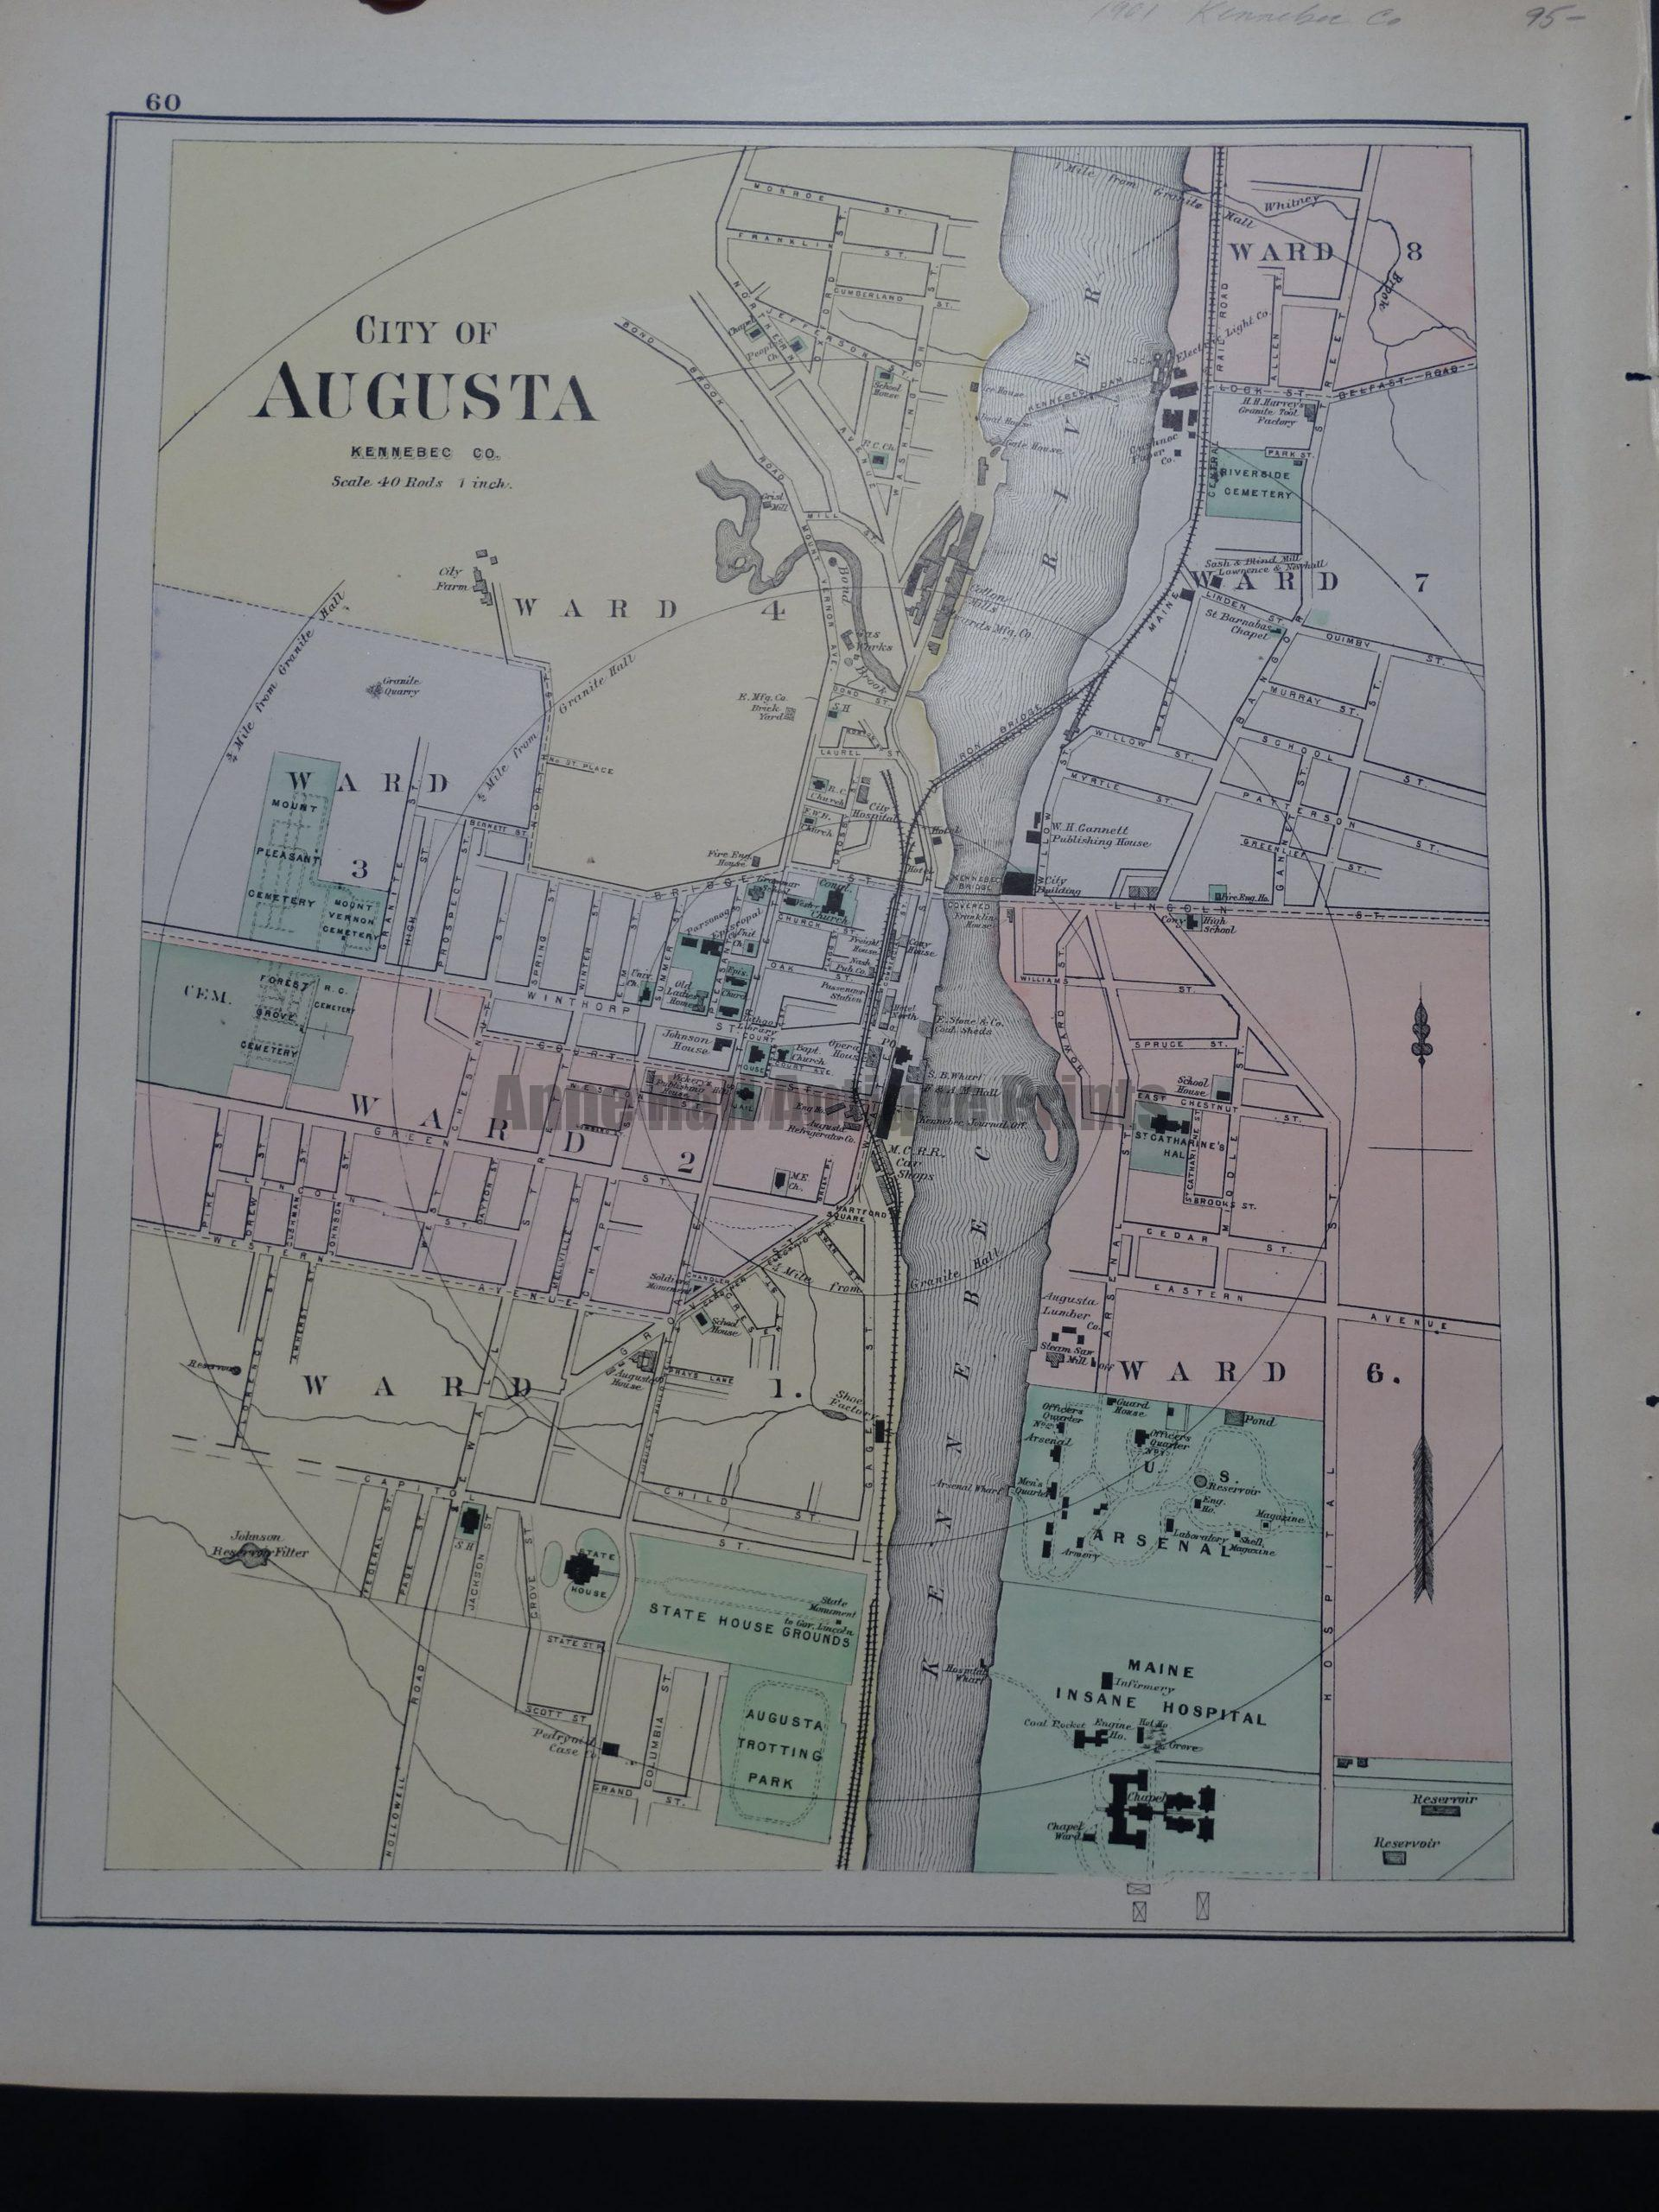 City of Augusta Kennebec Co